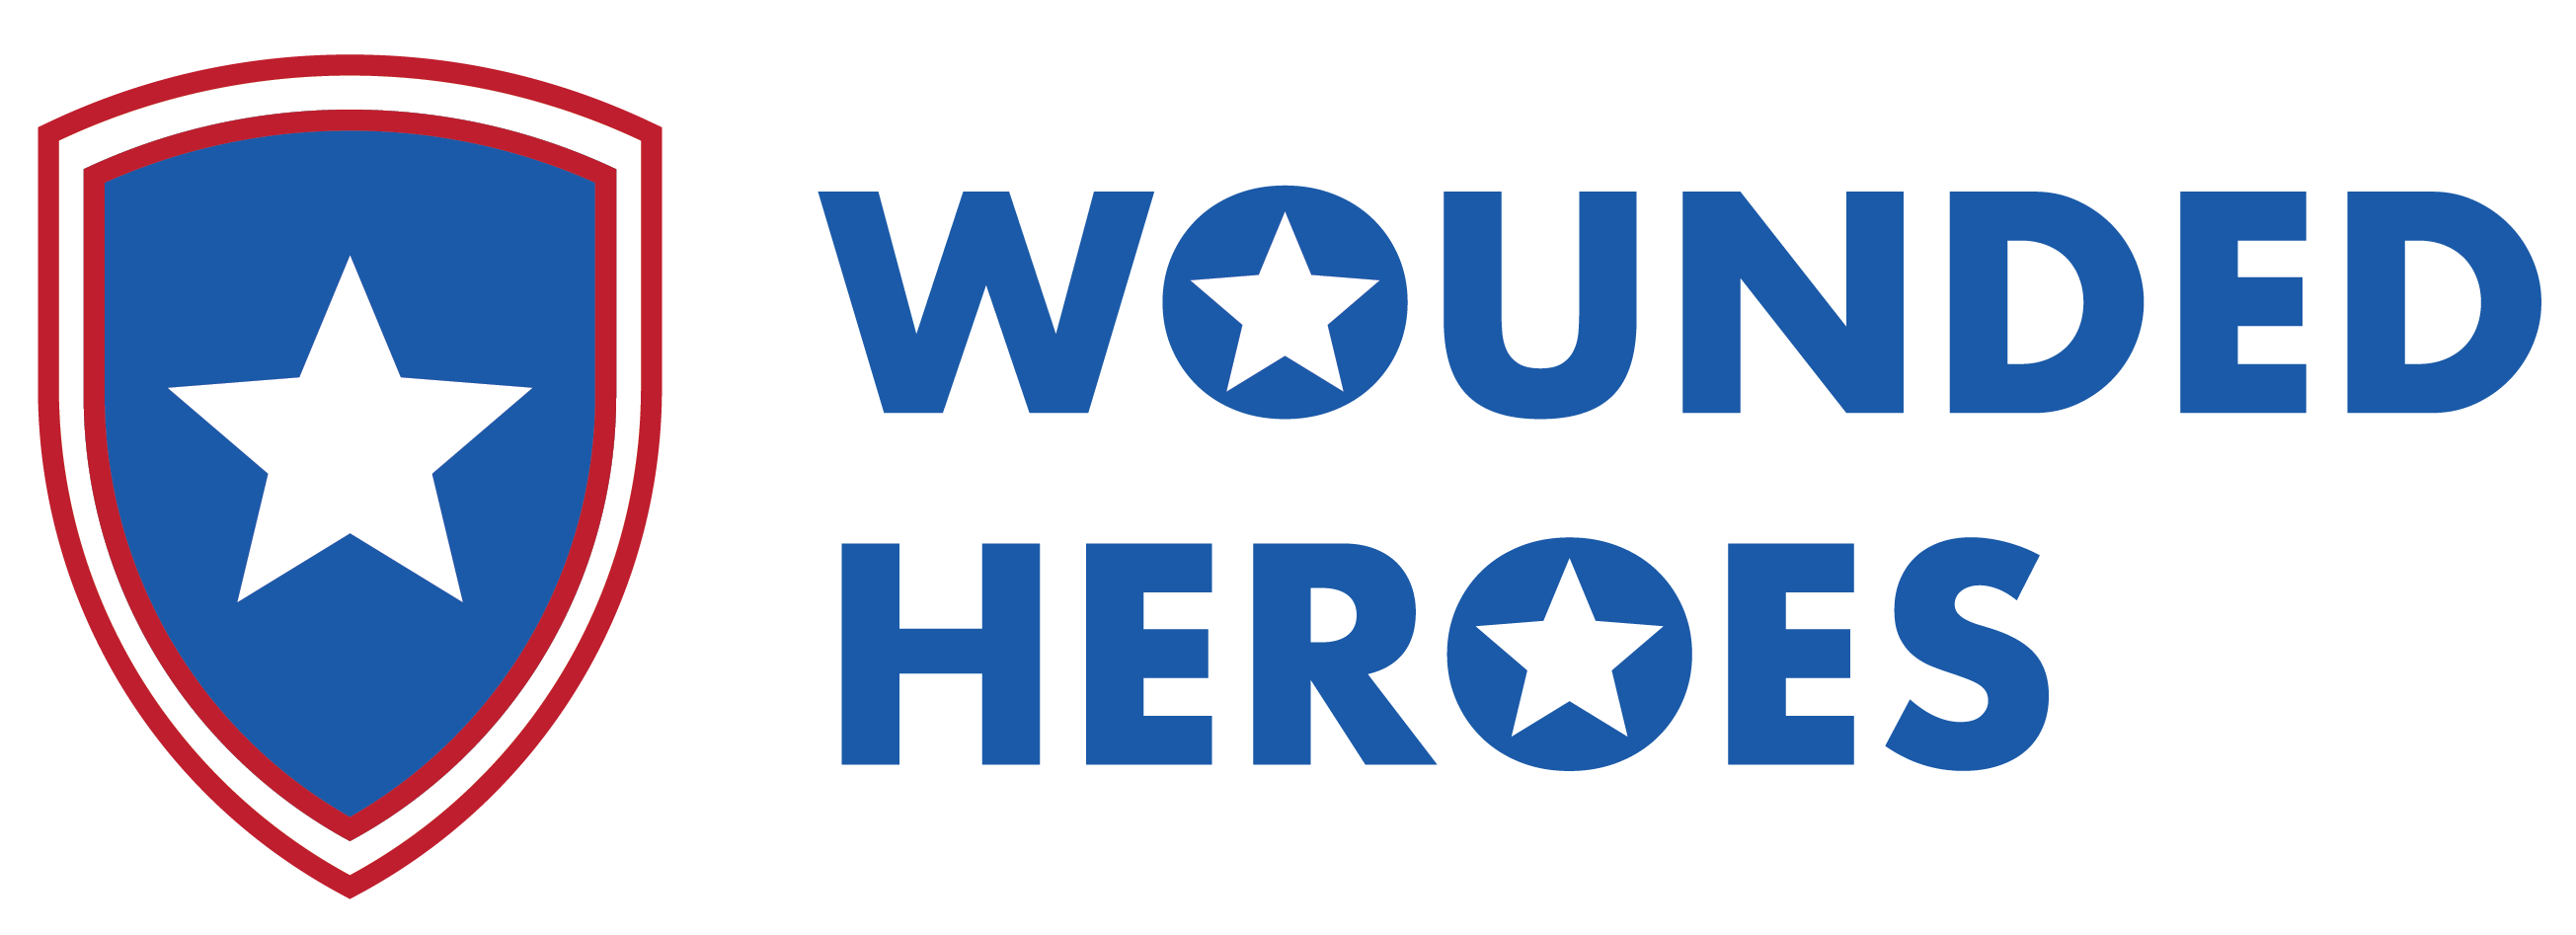 Wounded Heroes